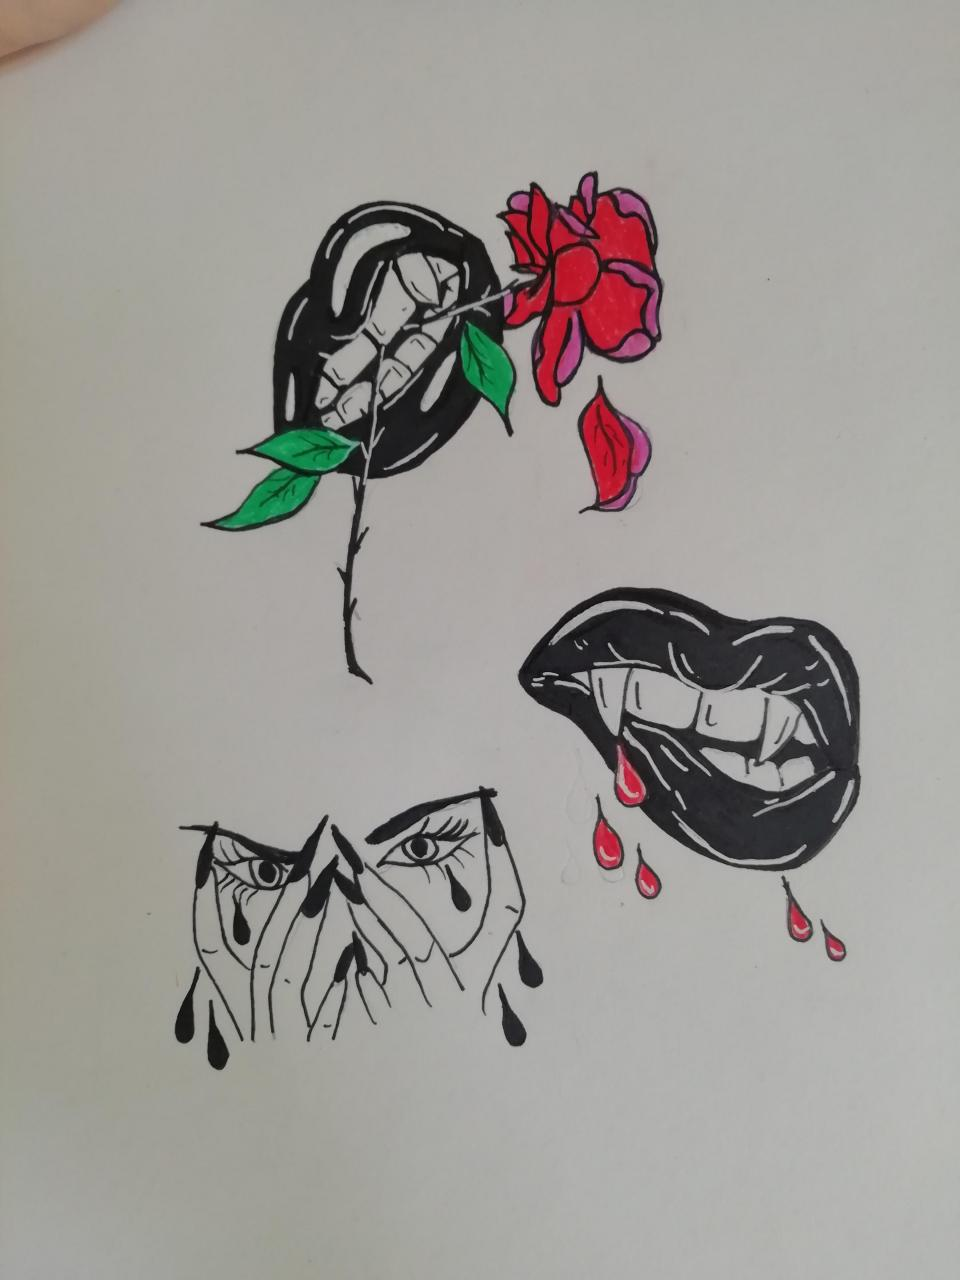 Rose, lips, eyes & fangs. Feedback?